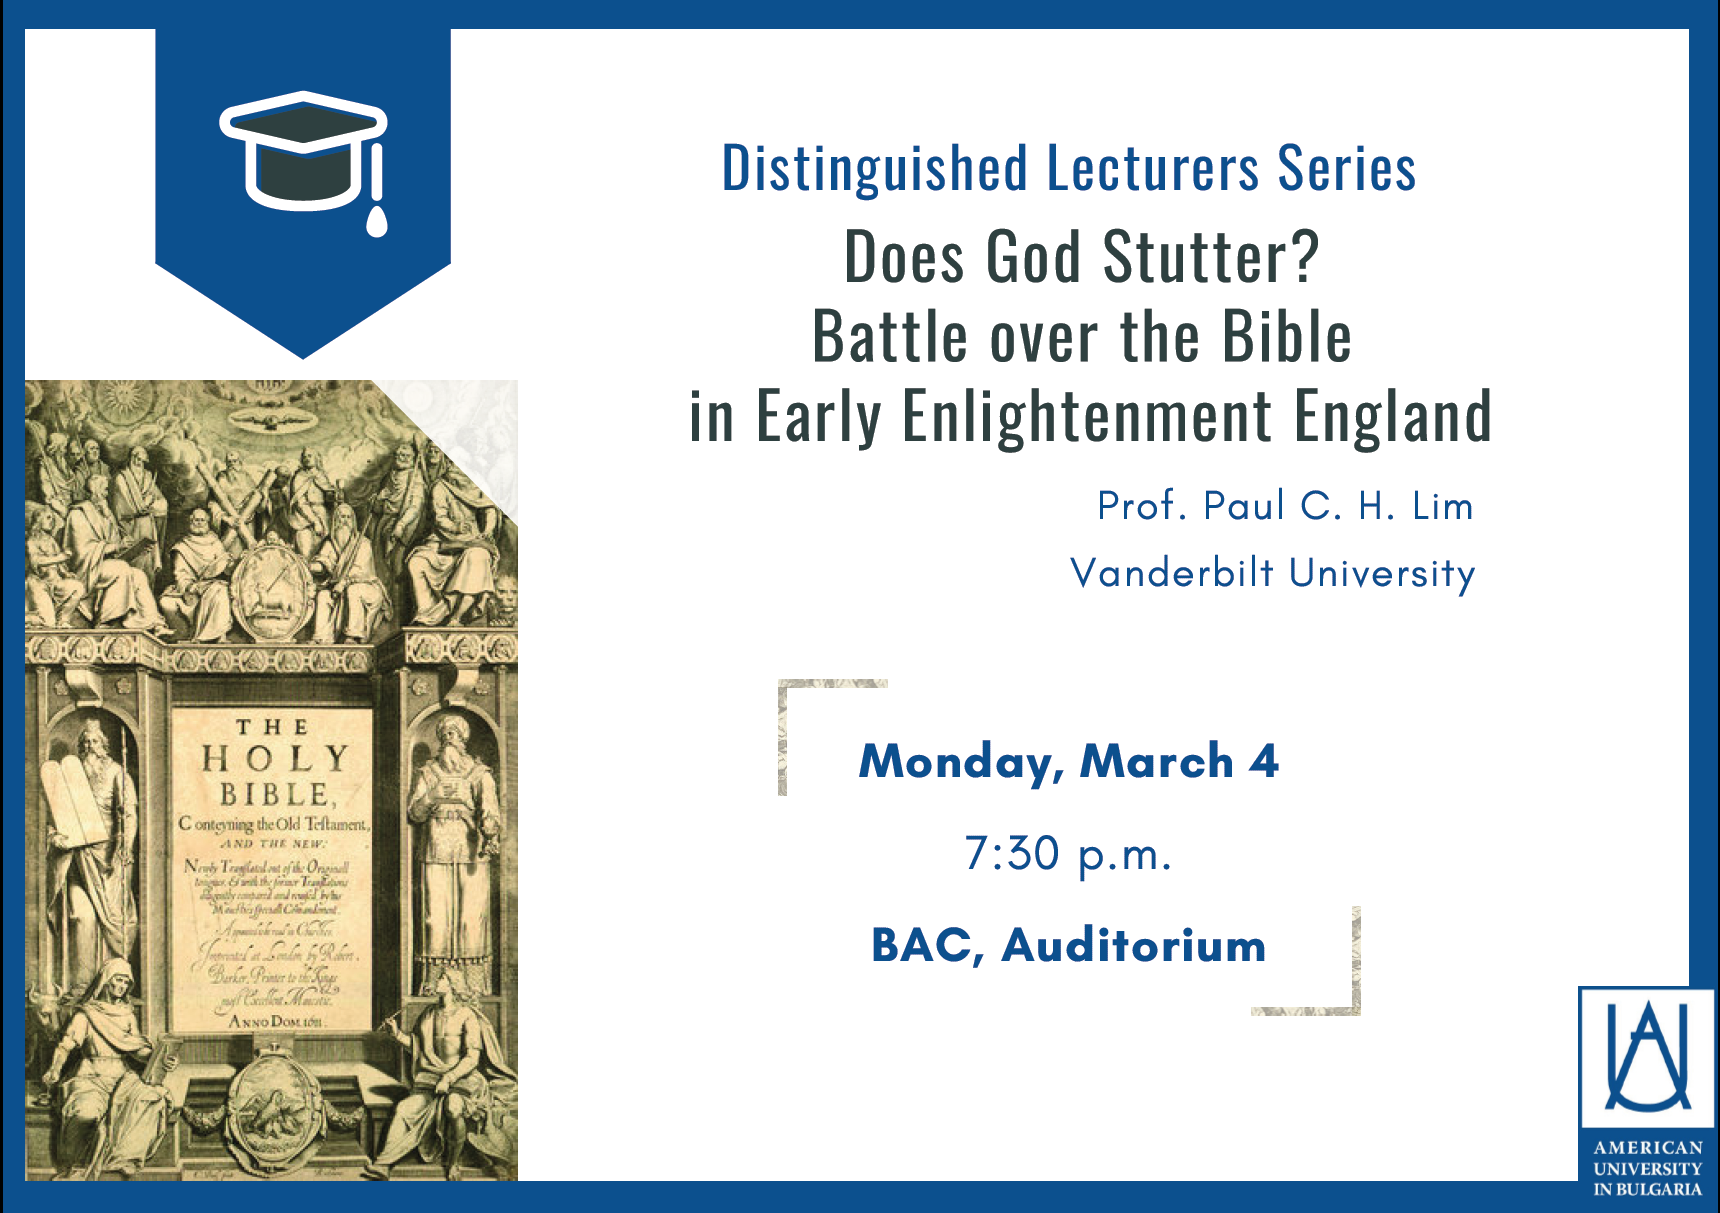 Lecture: Does God Stutter? Battle over the Bible in Early Enlightenment England